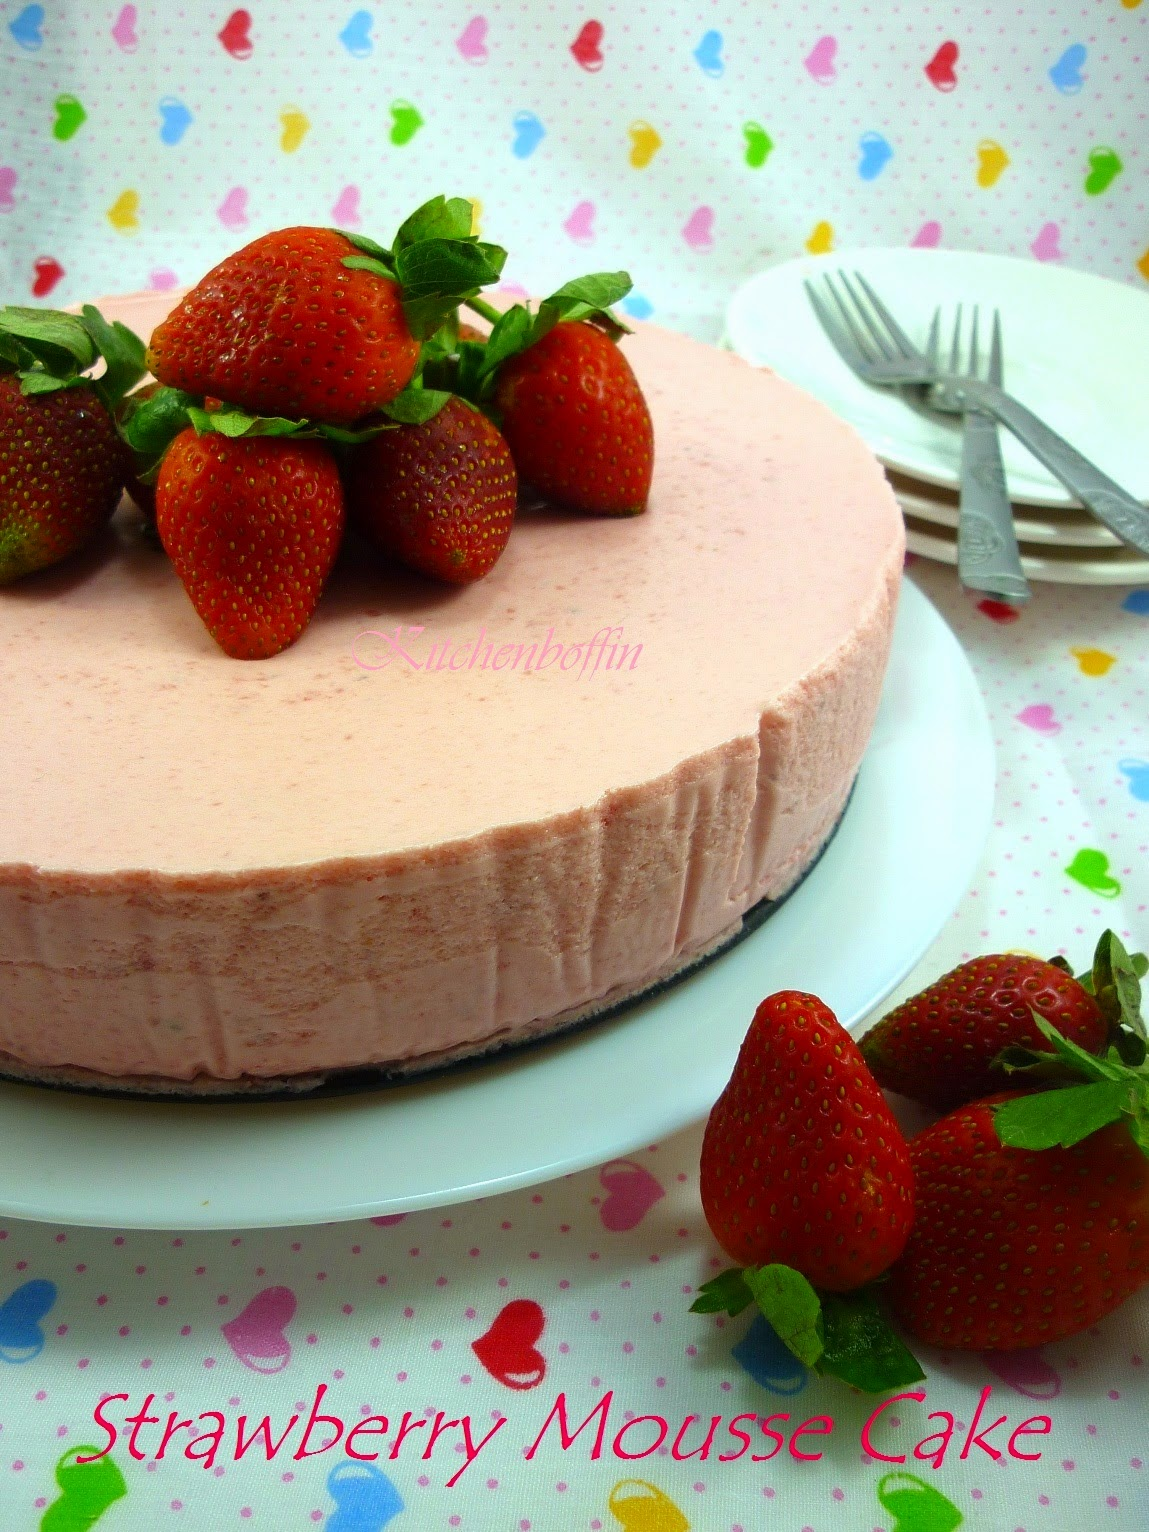 Kitchen boffin strawberry mousse cake strawberry mousse cake i was tempted to make this cake after i saw it in one of my buddy bloggers blog full scoops the procedures proved to be easy and sisterspd